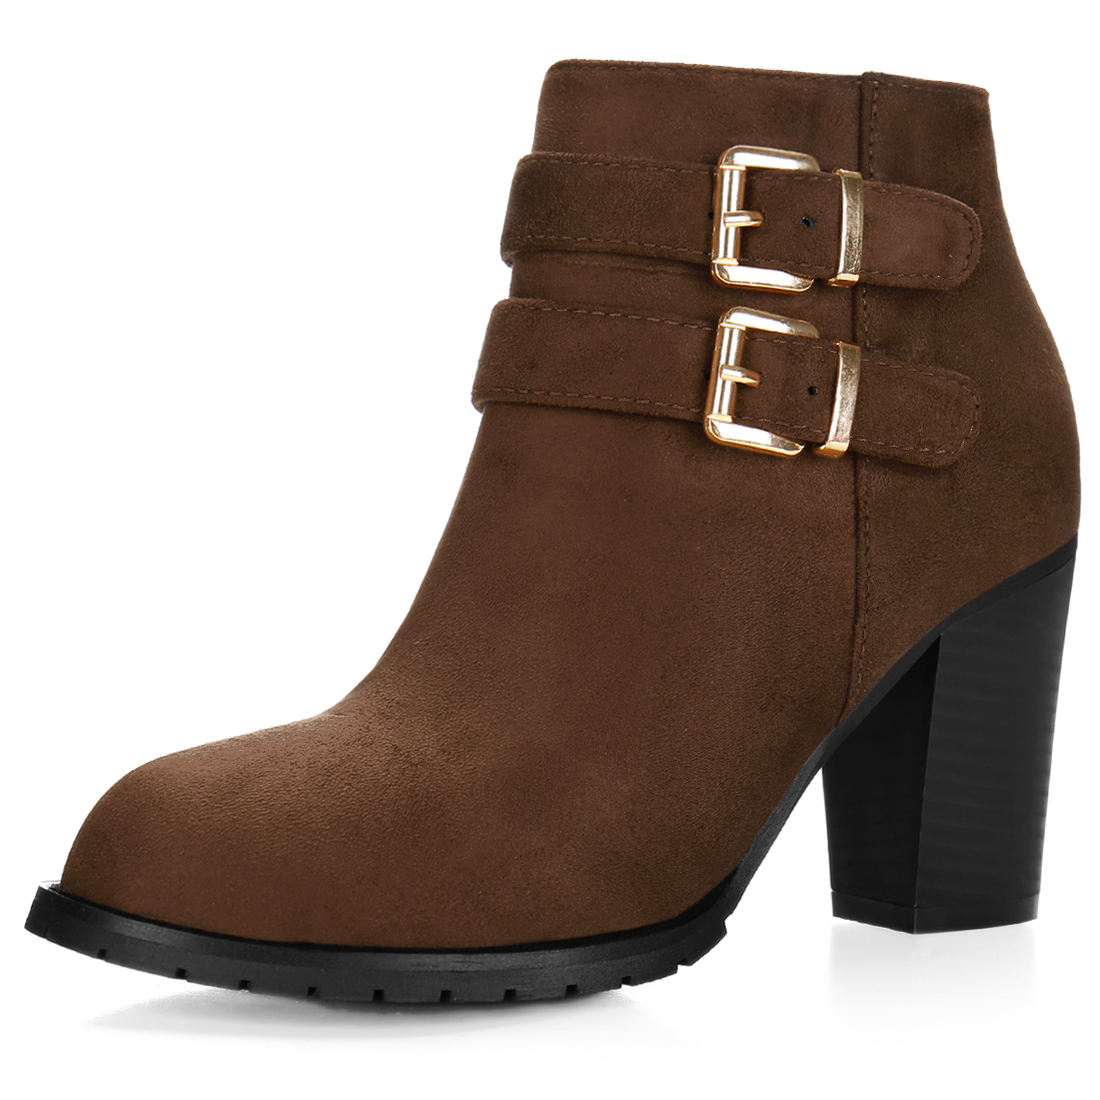 Women Round Toe Buckled Straps Chunky Heel Ankle Booties Coffee US 6